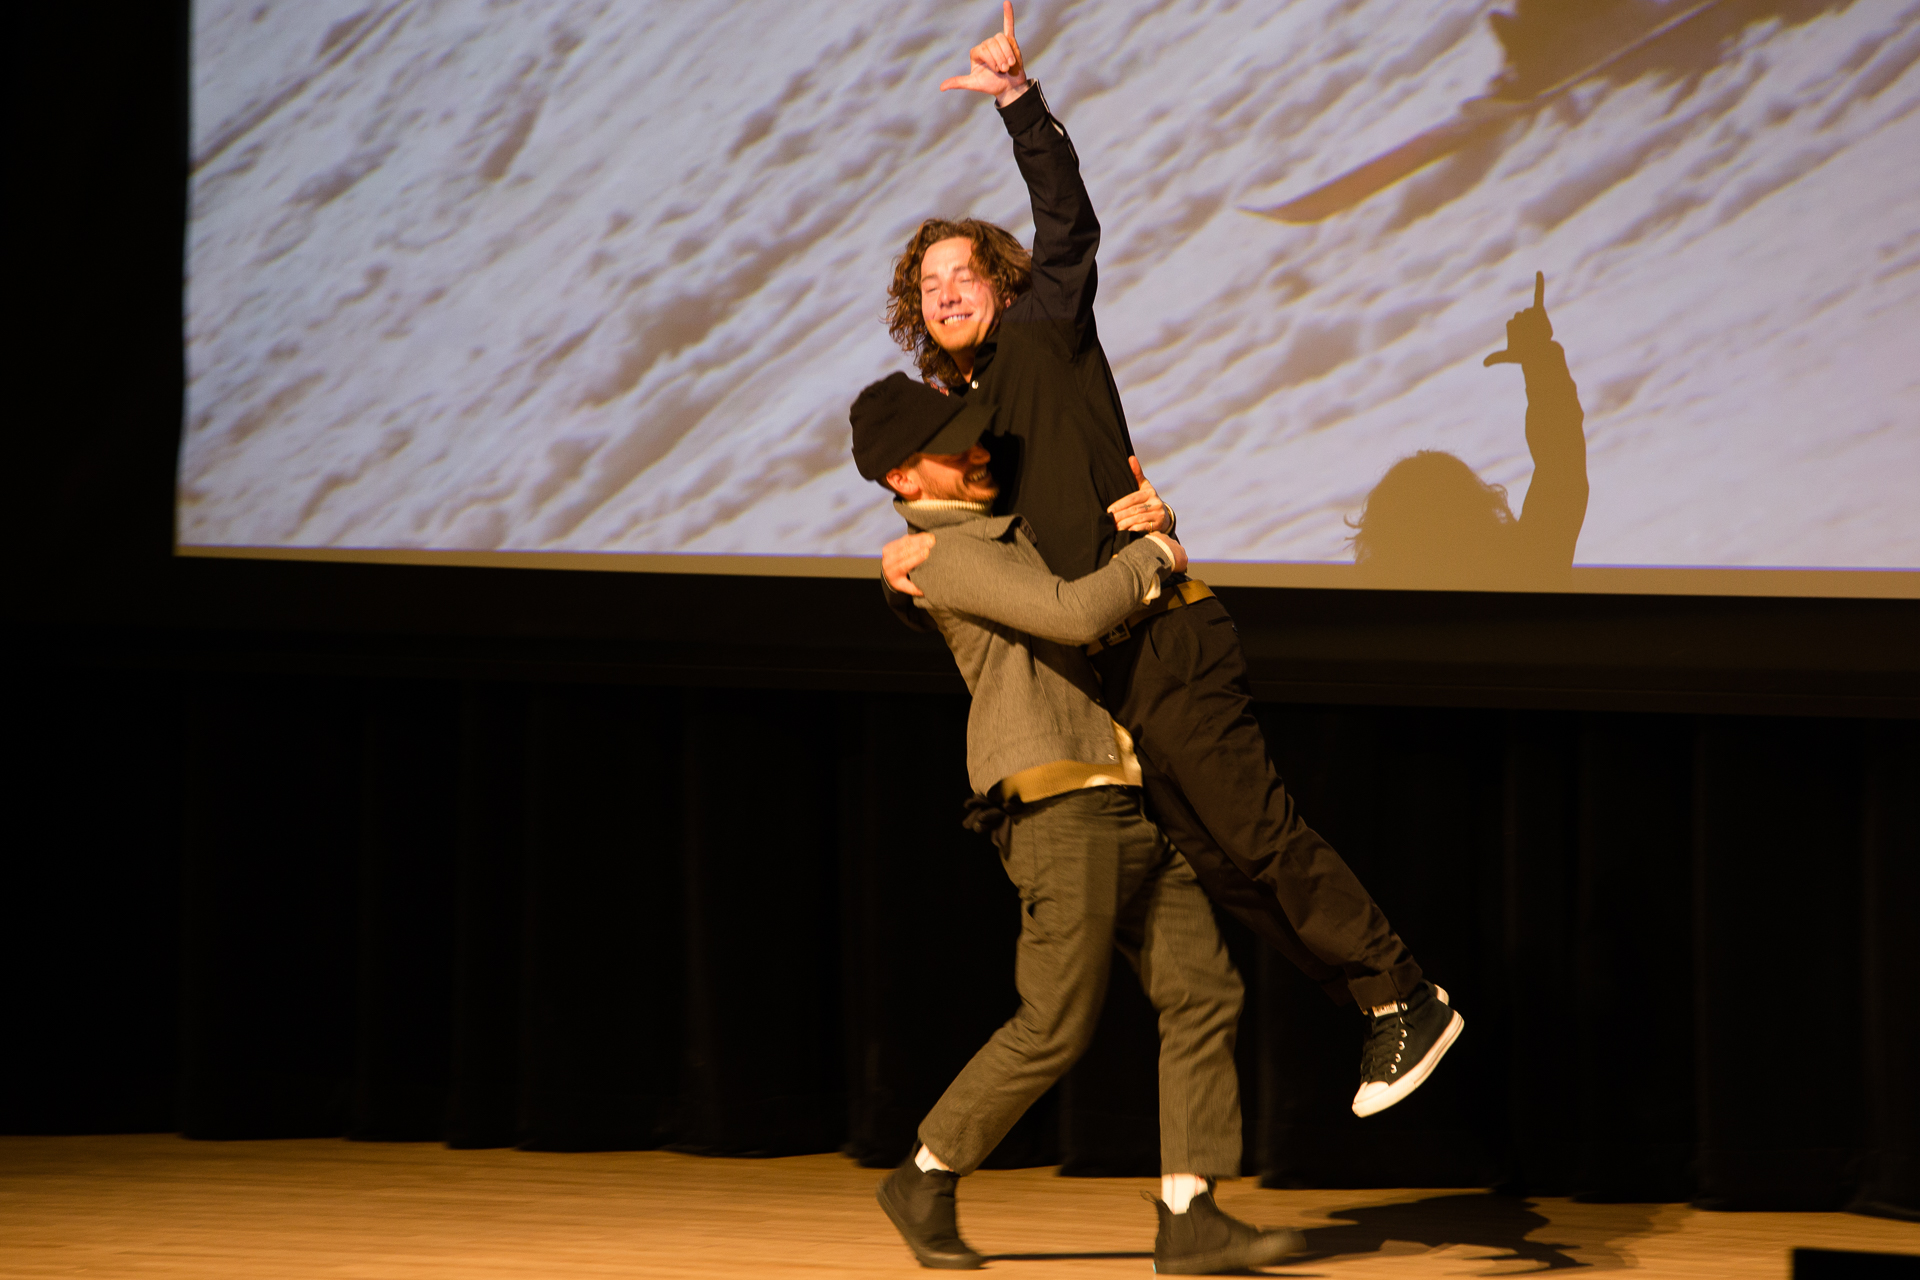 Sean Pettit carries Sammy Carlson onstage to accept the award for Best Male Performance. PHOTO: Liam Doran